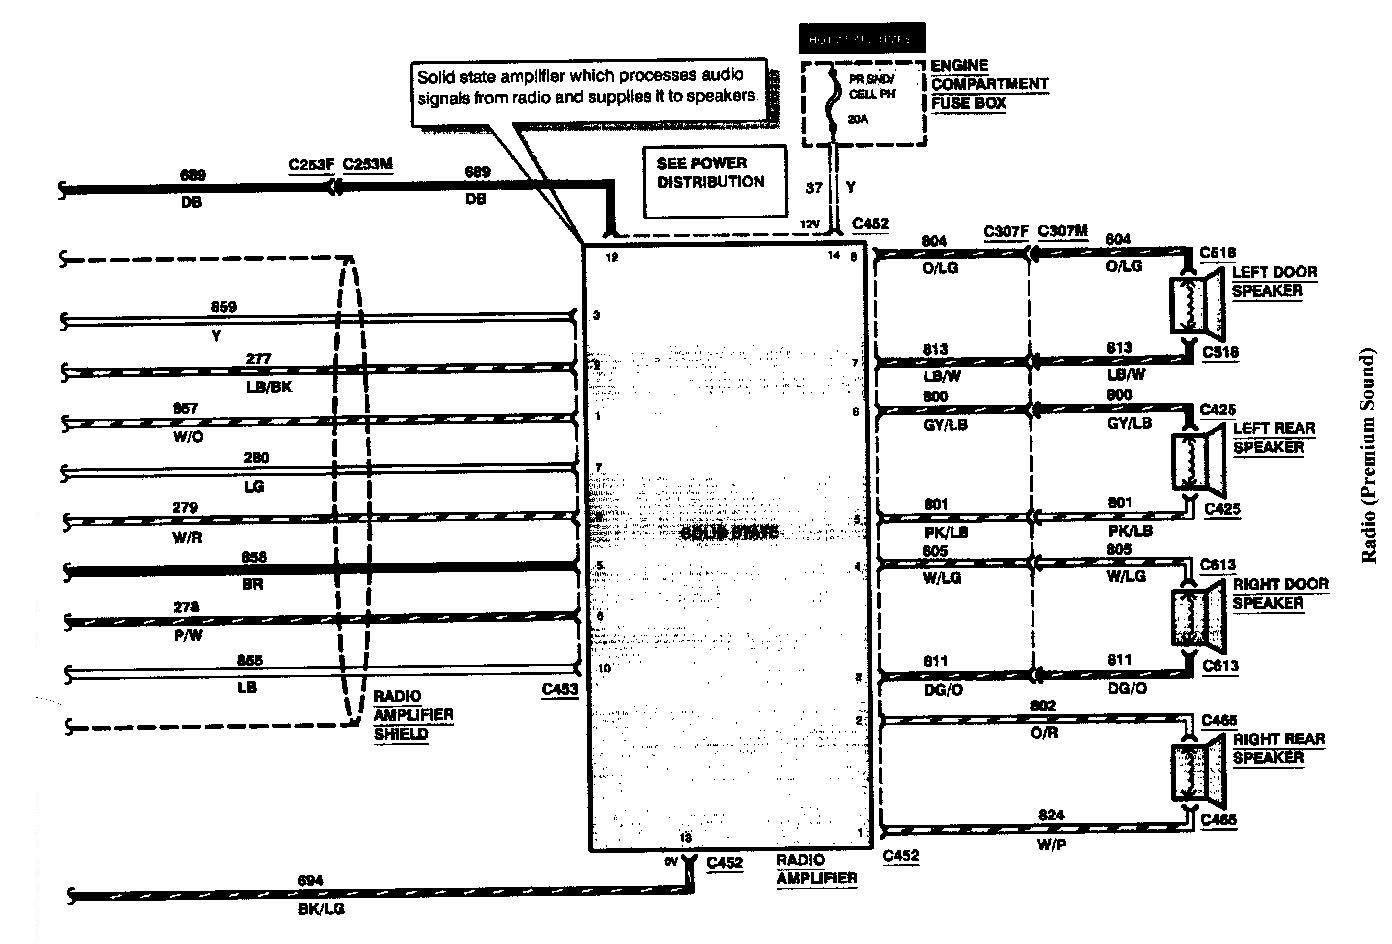 95Mark8 Premium Sound Wiring2 95 mark 8 jbl wiring diagram needed lincolns online message forum 2000 lincoln town car radio wiring diagram at edmiracle.co